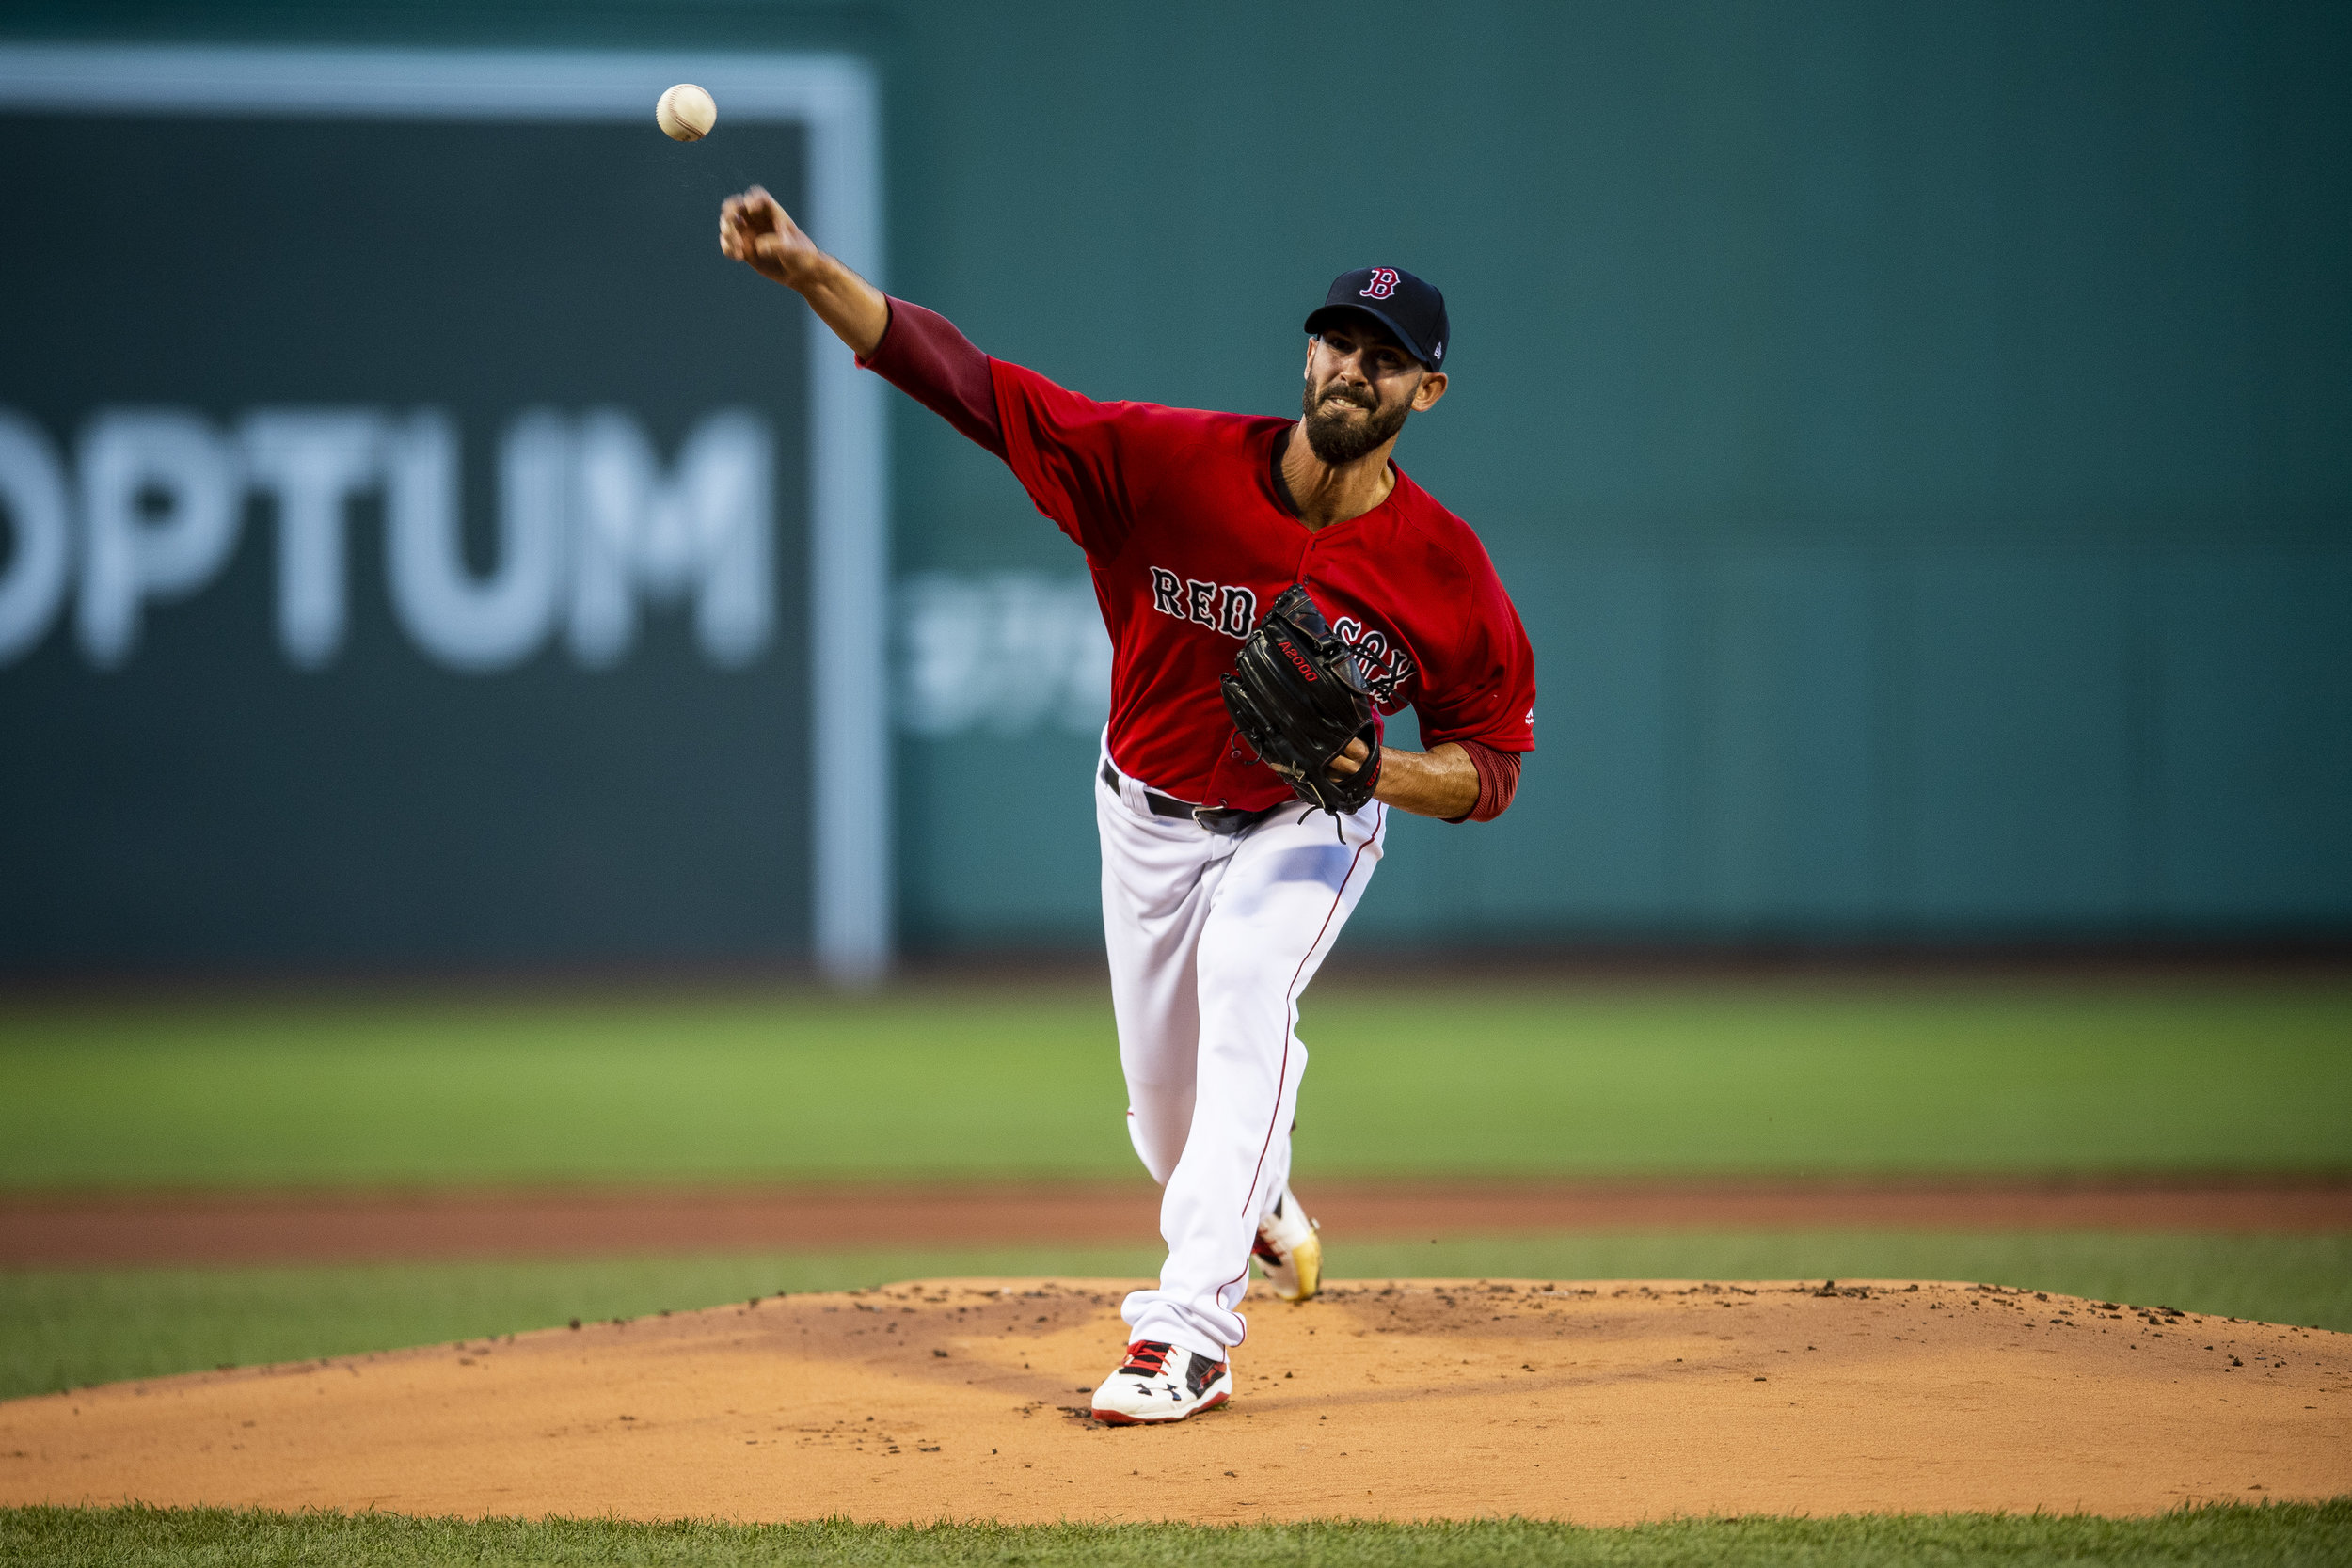 August 3, 2018, Boston, MA: Boston Red Sox pitcher Rick Porcello deliver a pitch as the Boston Red Sox face the New York Yankees at Fenway Park in Boston, Massachusetts on Friday, August 3, 2018. (Photo by Matthew Thomas/Boston Red Sox)